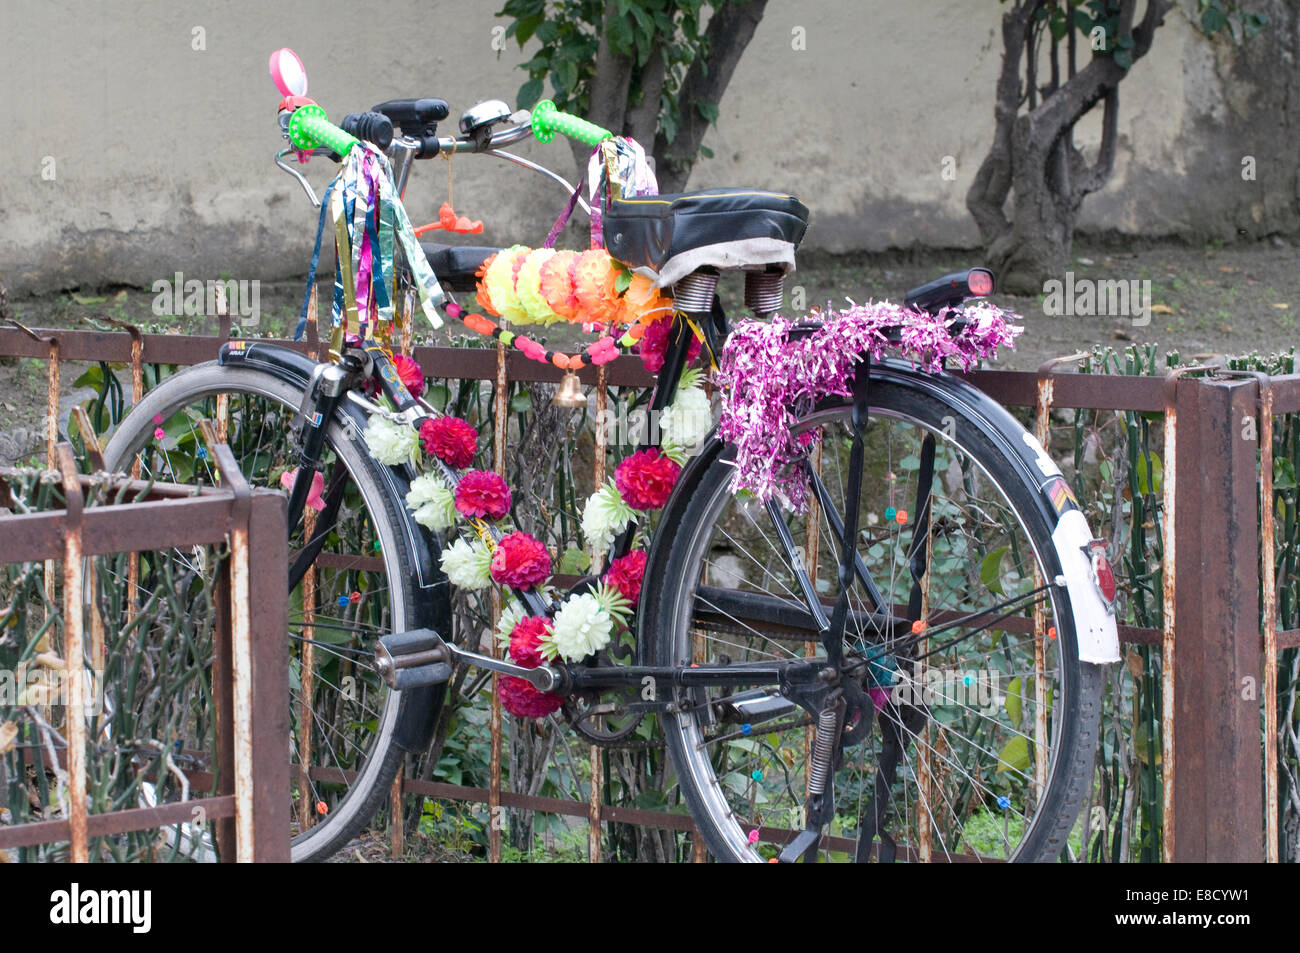 Garlanded Indian bicycle festooned with colourful ribbons and Christmas like decorations on the banks of the Ganges - Stock Image